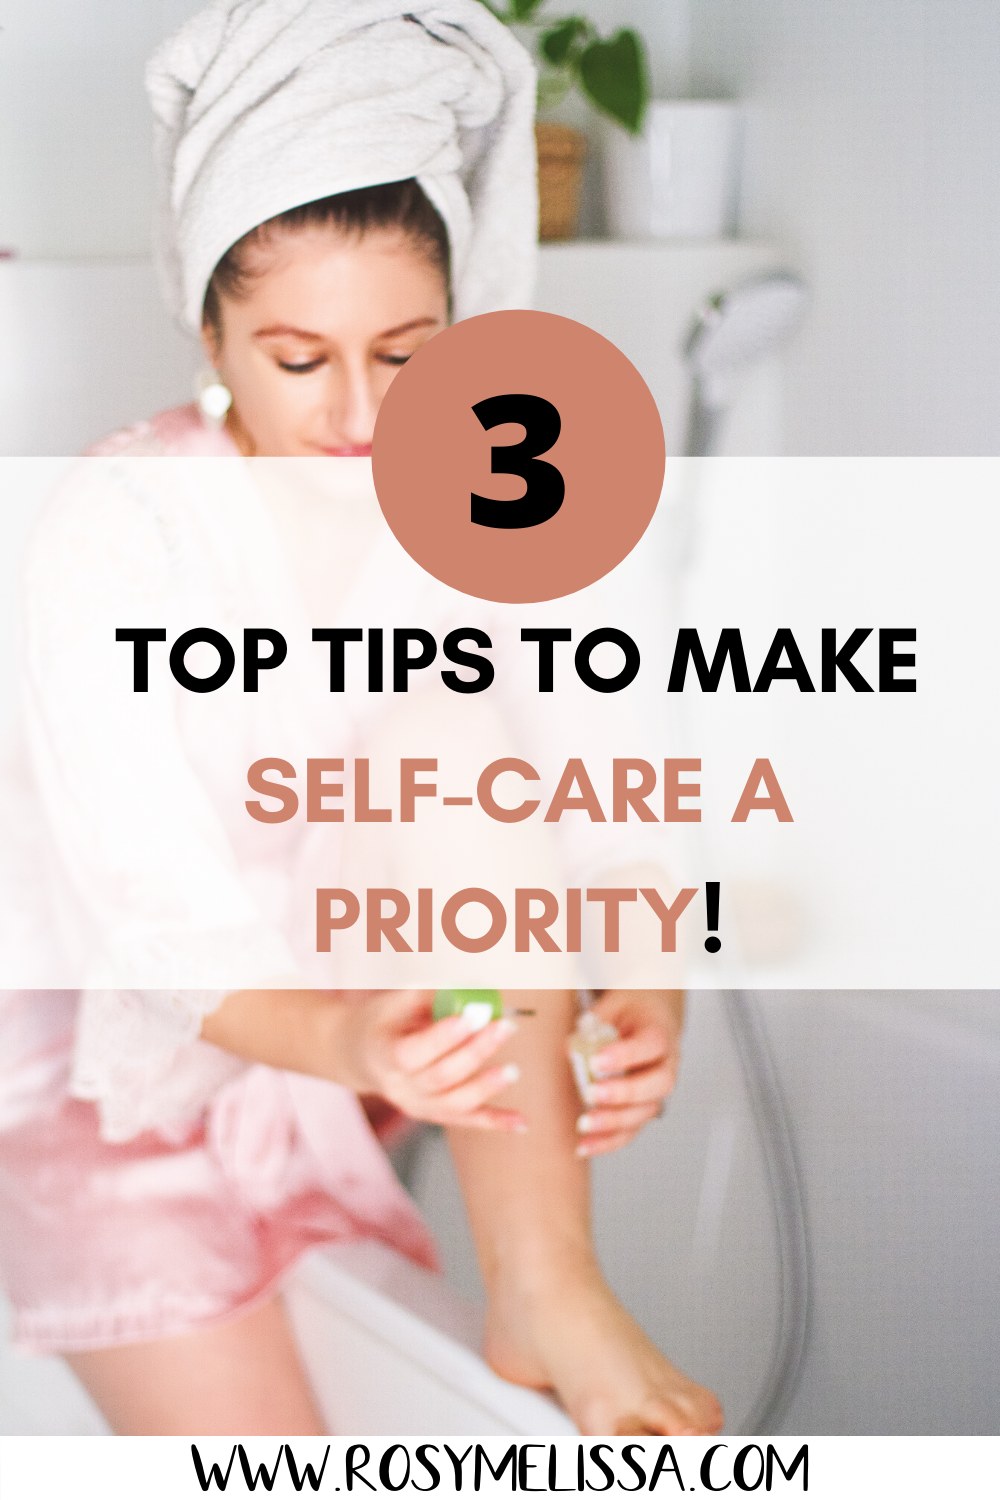 the ultimate tips to make self-care a priority, 3 top tips to make self-care a priority, self care routine